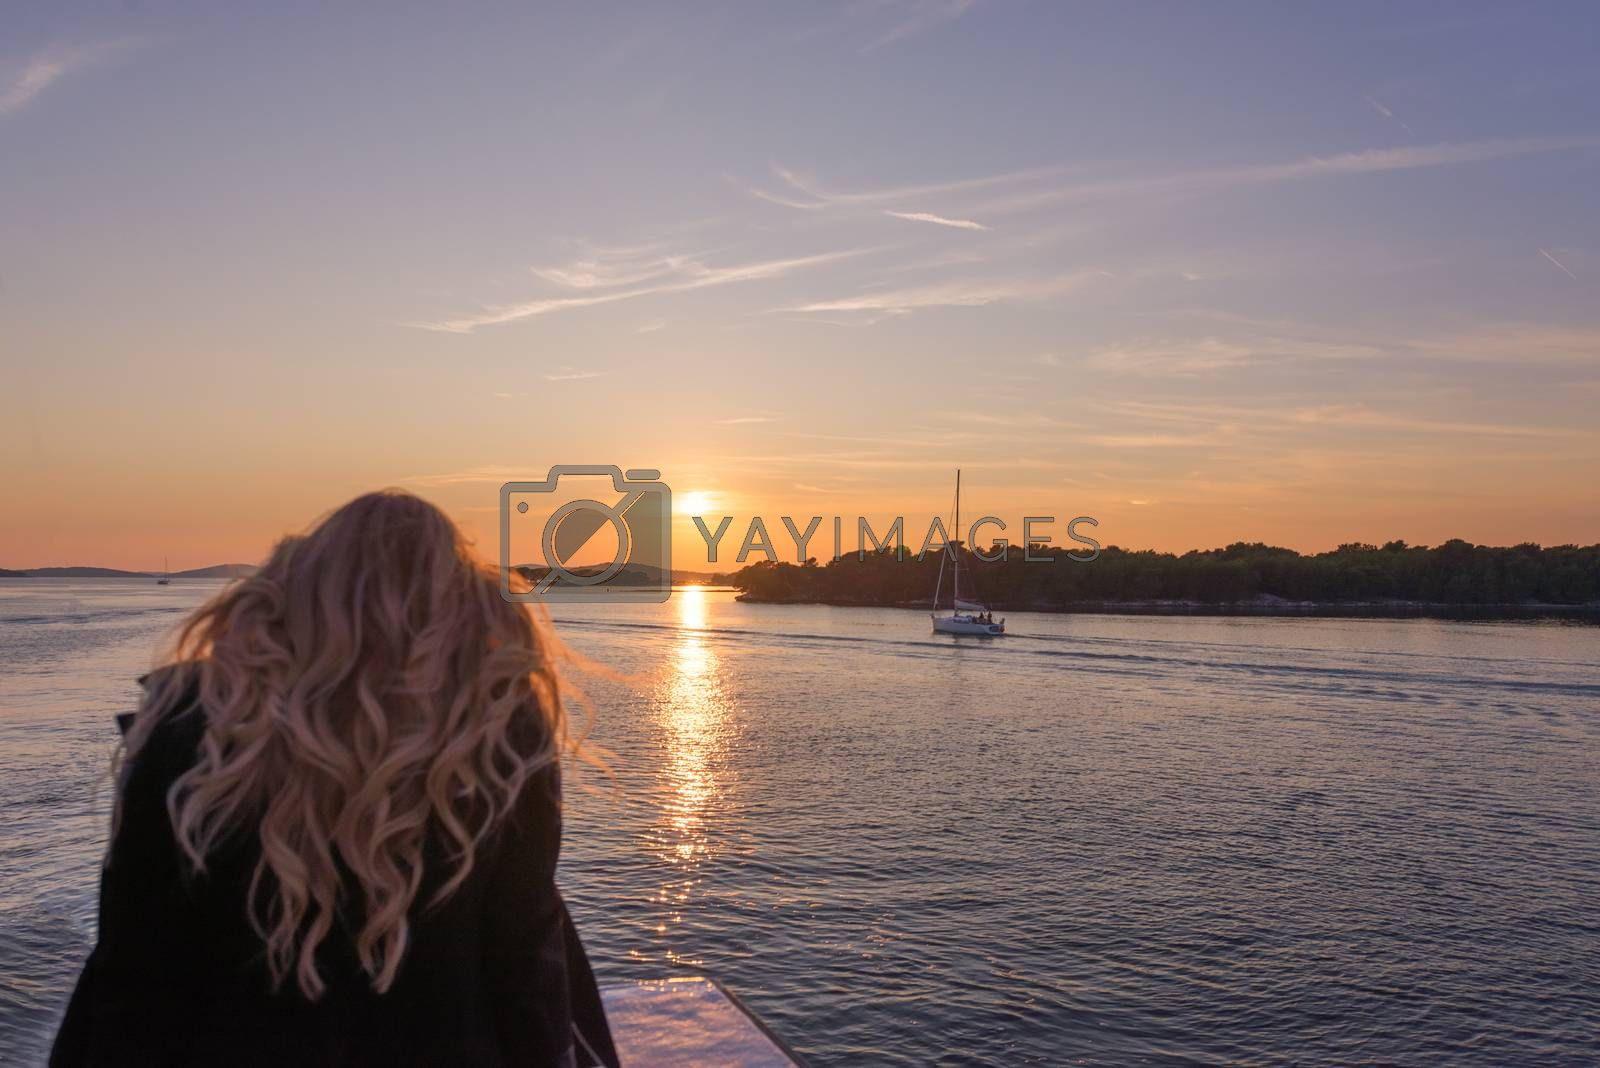 Woman traveling by boat at sunset among the islands, sailing boats and yachts in background